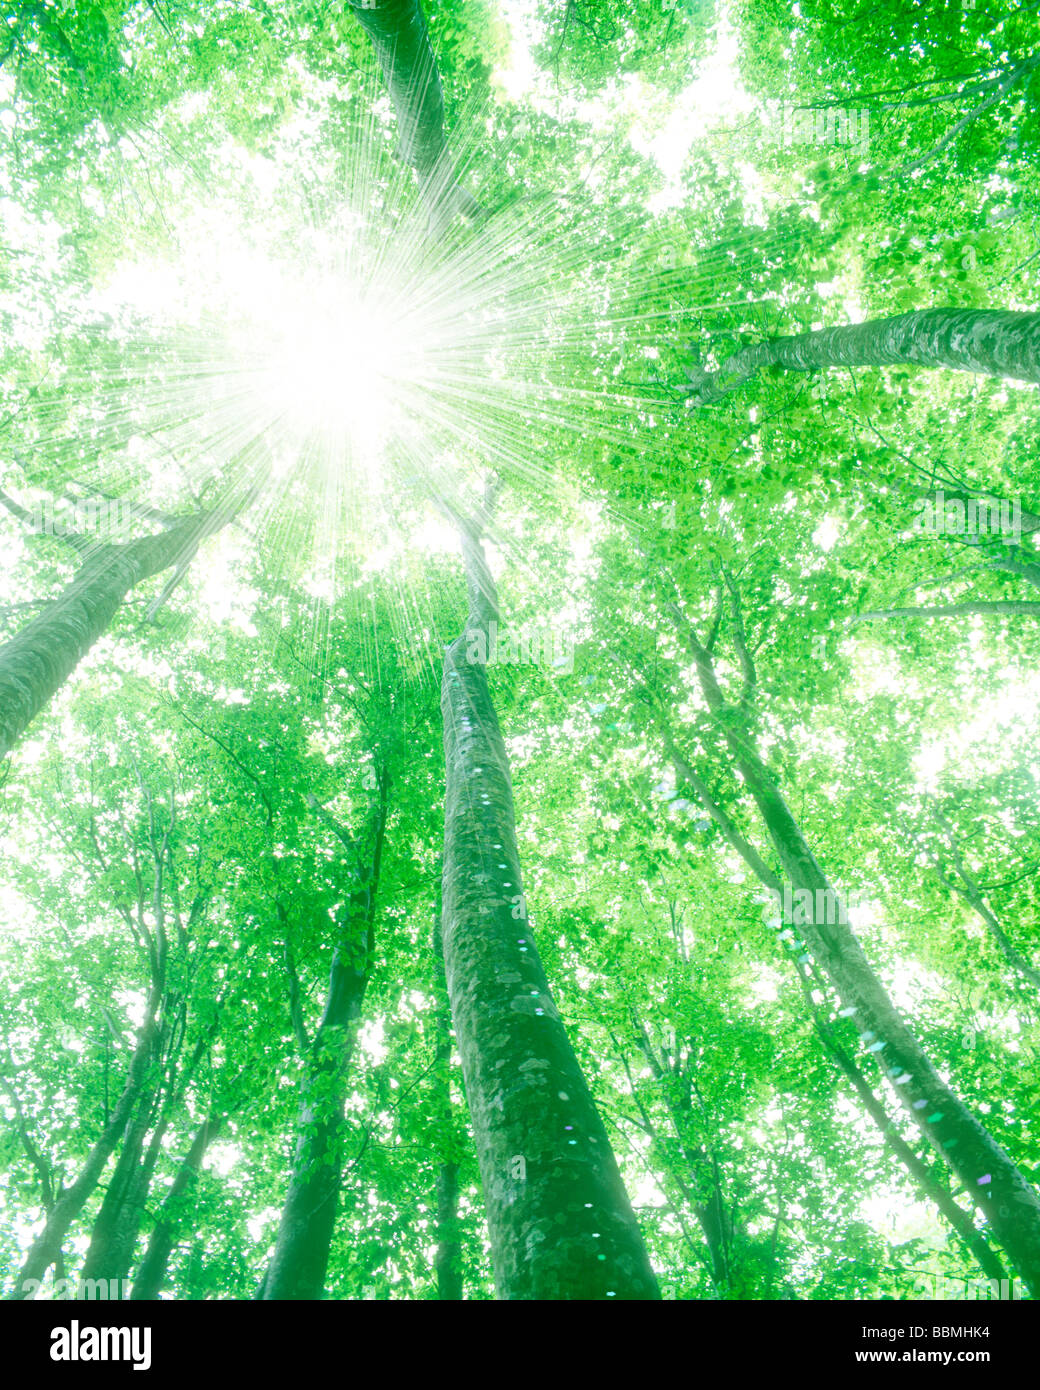 Sunshine through trees, view from below - Image BBMHK4 © Image Werks Co.,Ltd. / Alamy